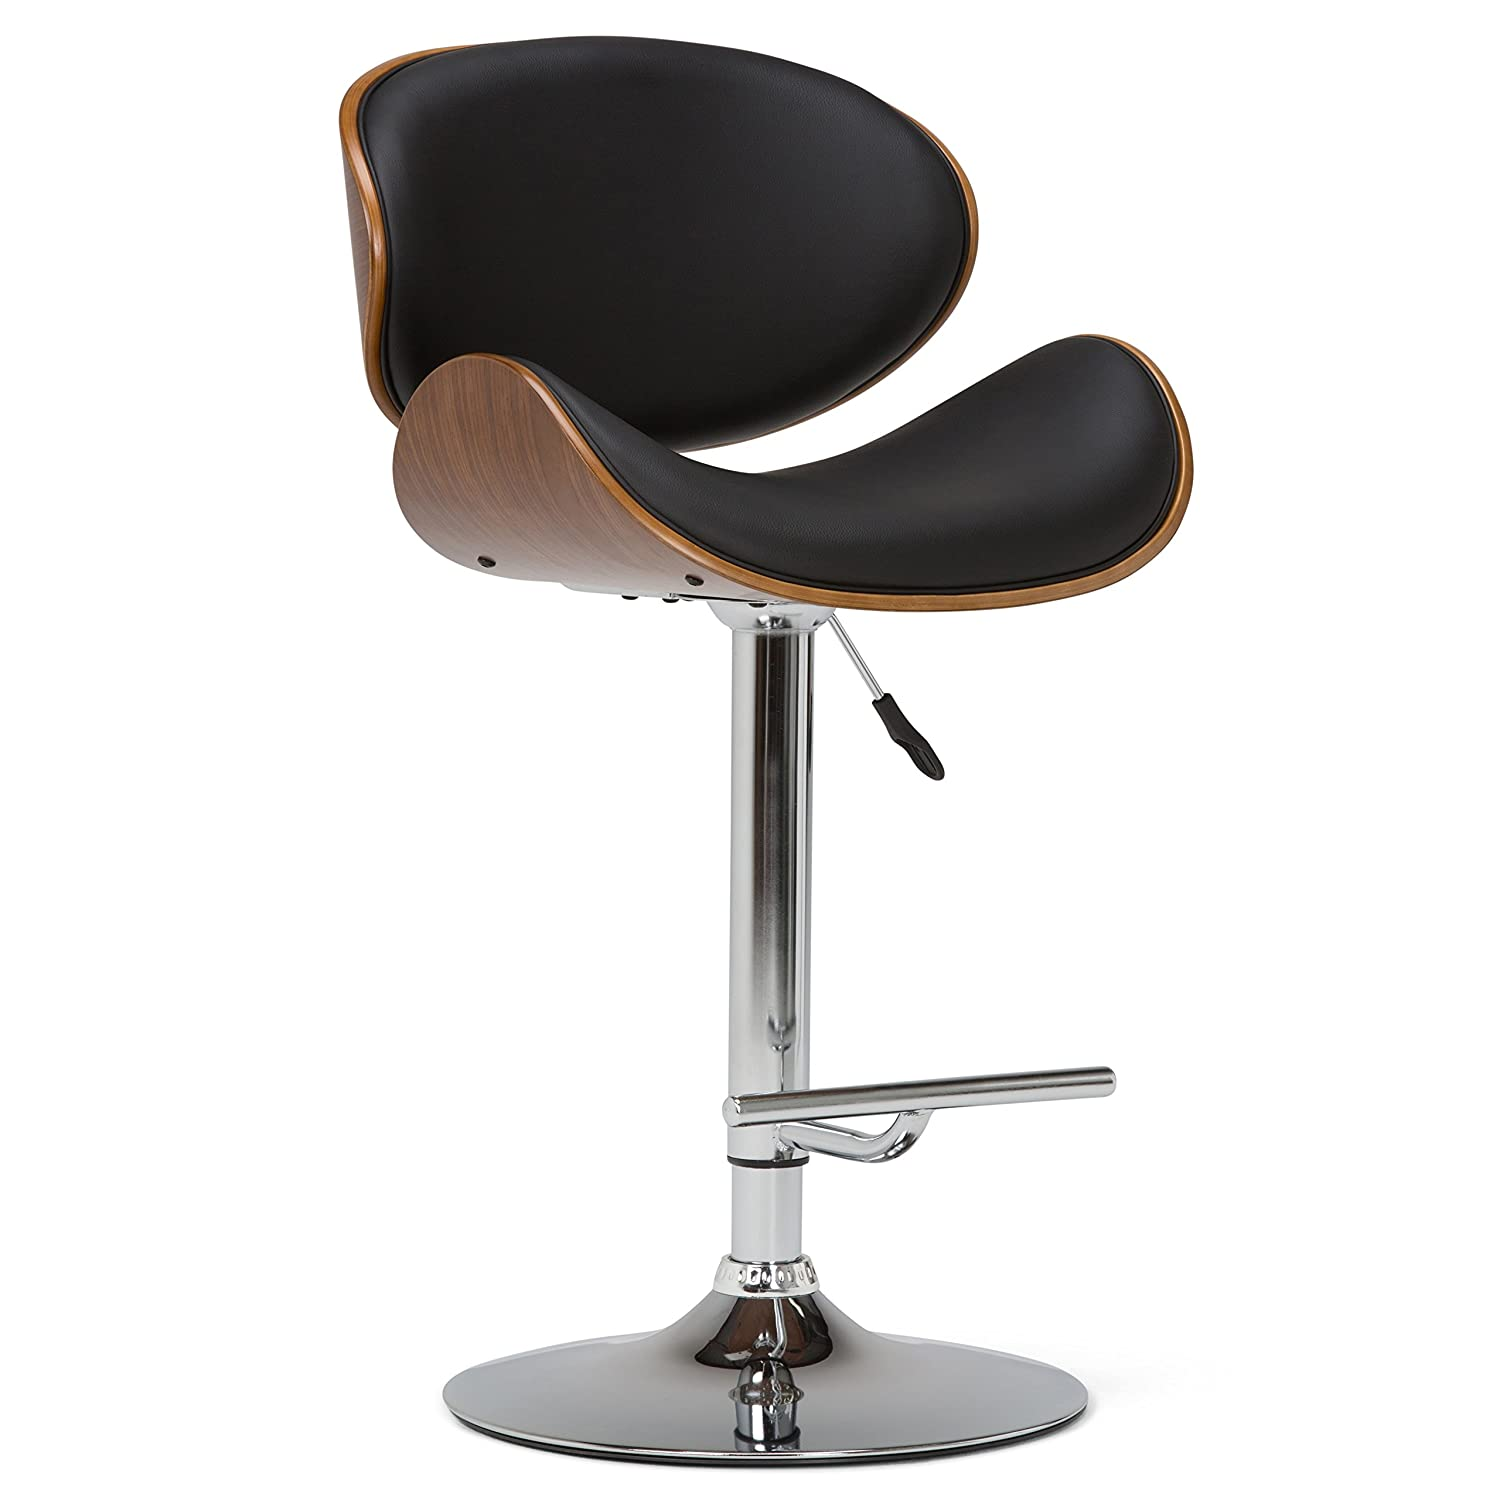 Enjoyable Simpli Home Axcmarn Bl Marana Mid Century Modern Bentwood Adjustable Height Gas Lift Bar Stool In Black Faux Leather Dailytribune Chair Design For Home Dailytribuneorg